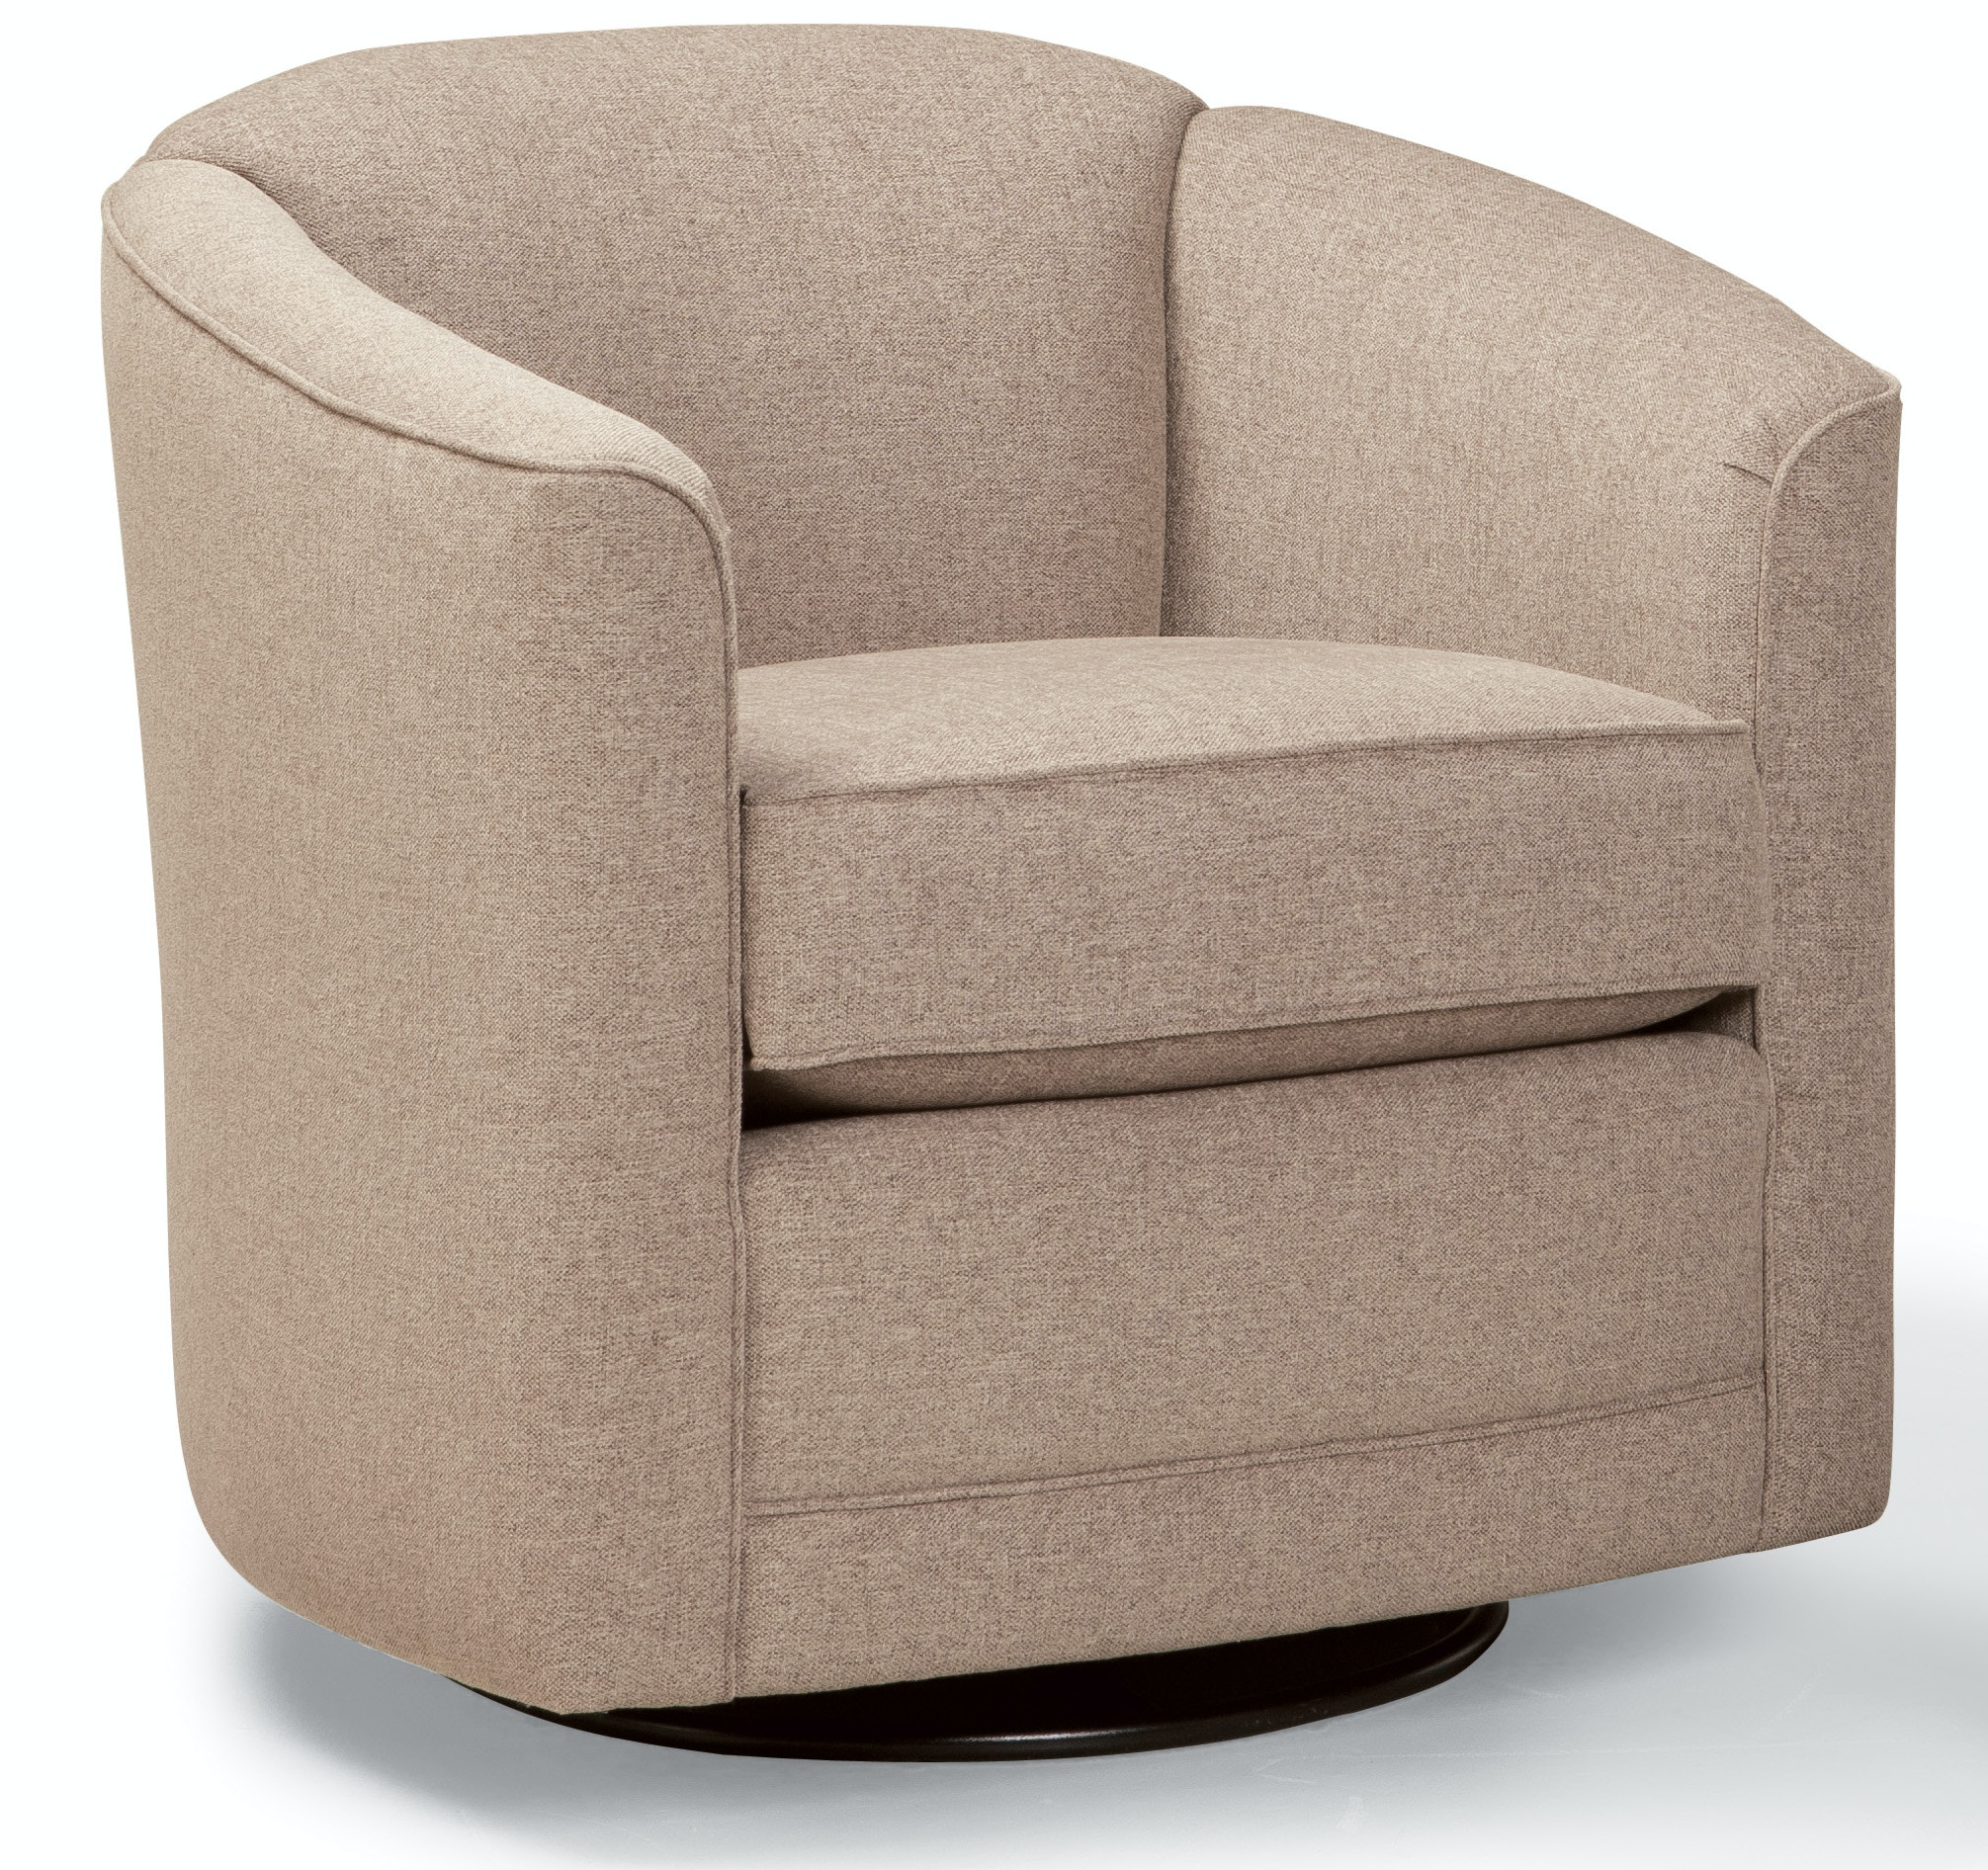 living room swivel glider chairs small styling ideas smith brothers chair 506 58 whitley